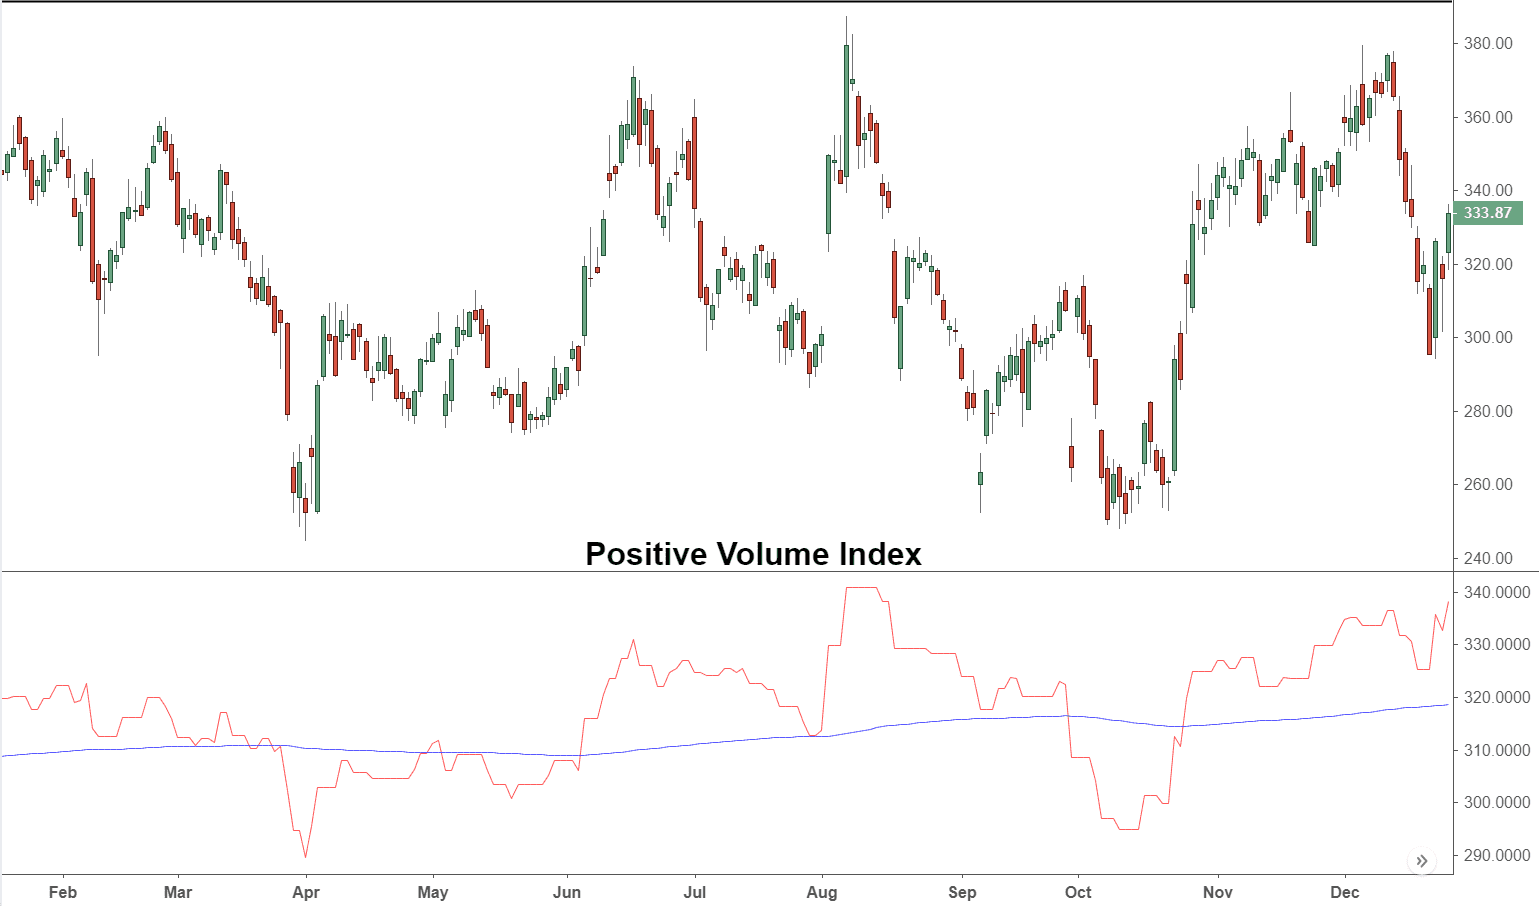 Positive Volume Index (PVI) Definition and Uses